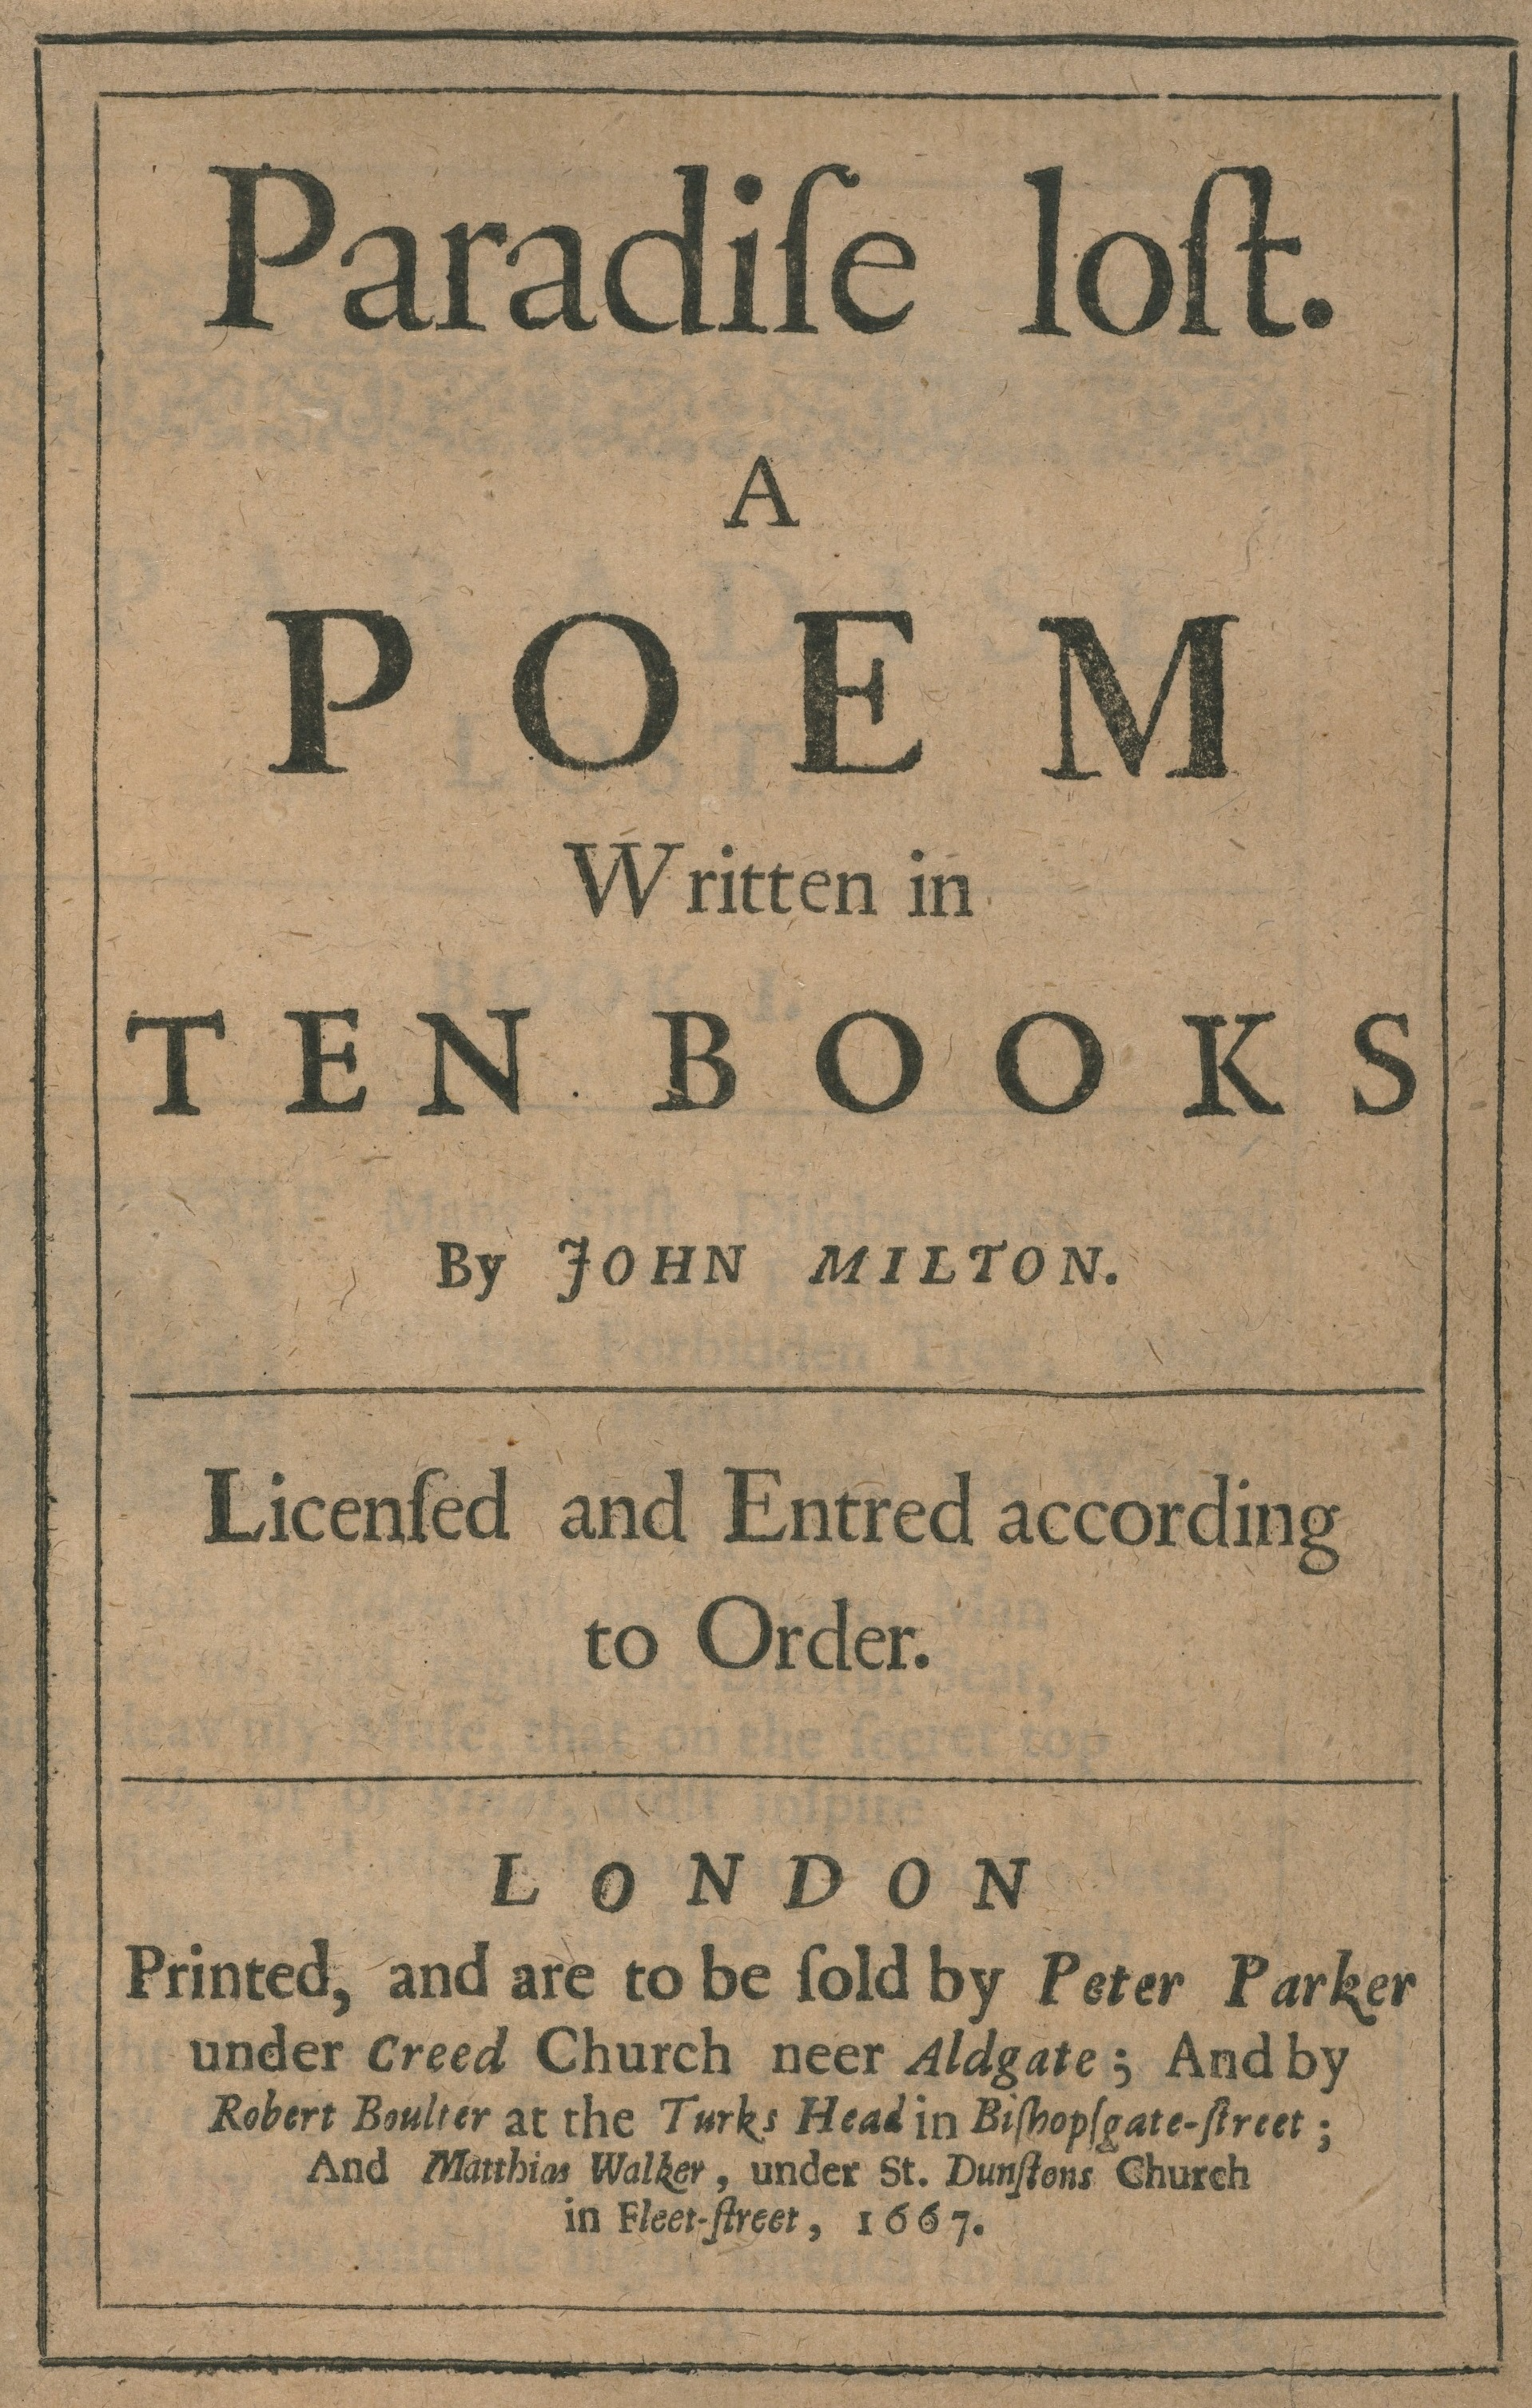 milton the poet essay John milton (9 december 1608 – 8 november 1674) also known as 'the renaissance poet' was born in london on december 9, 1608, as a son of the composer john.